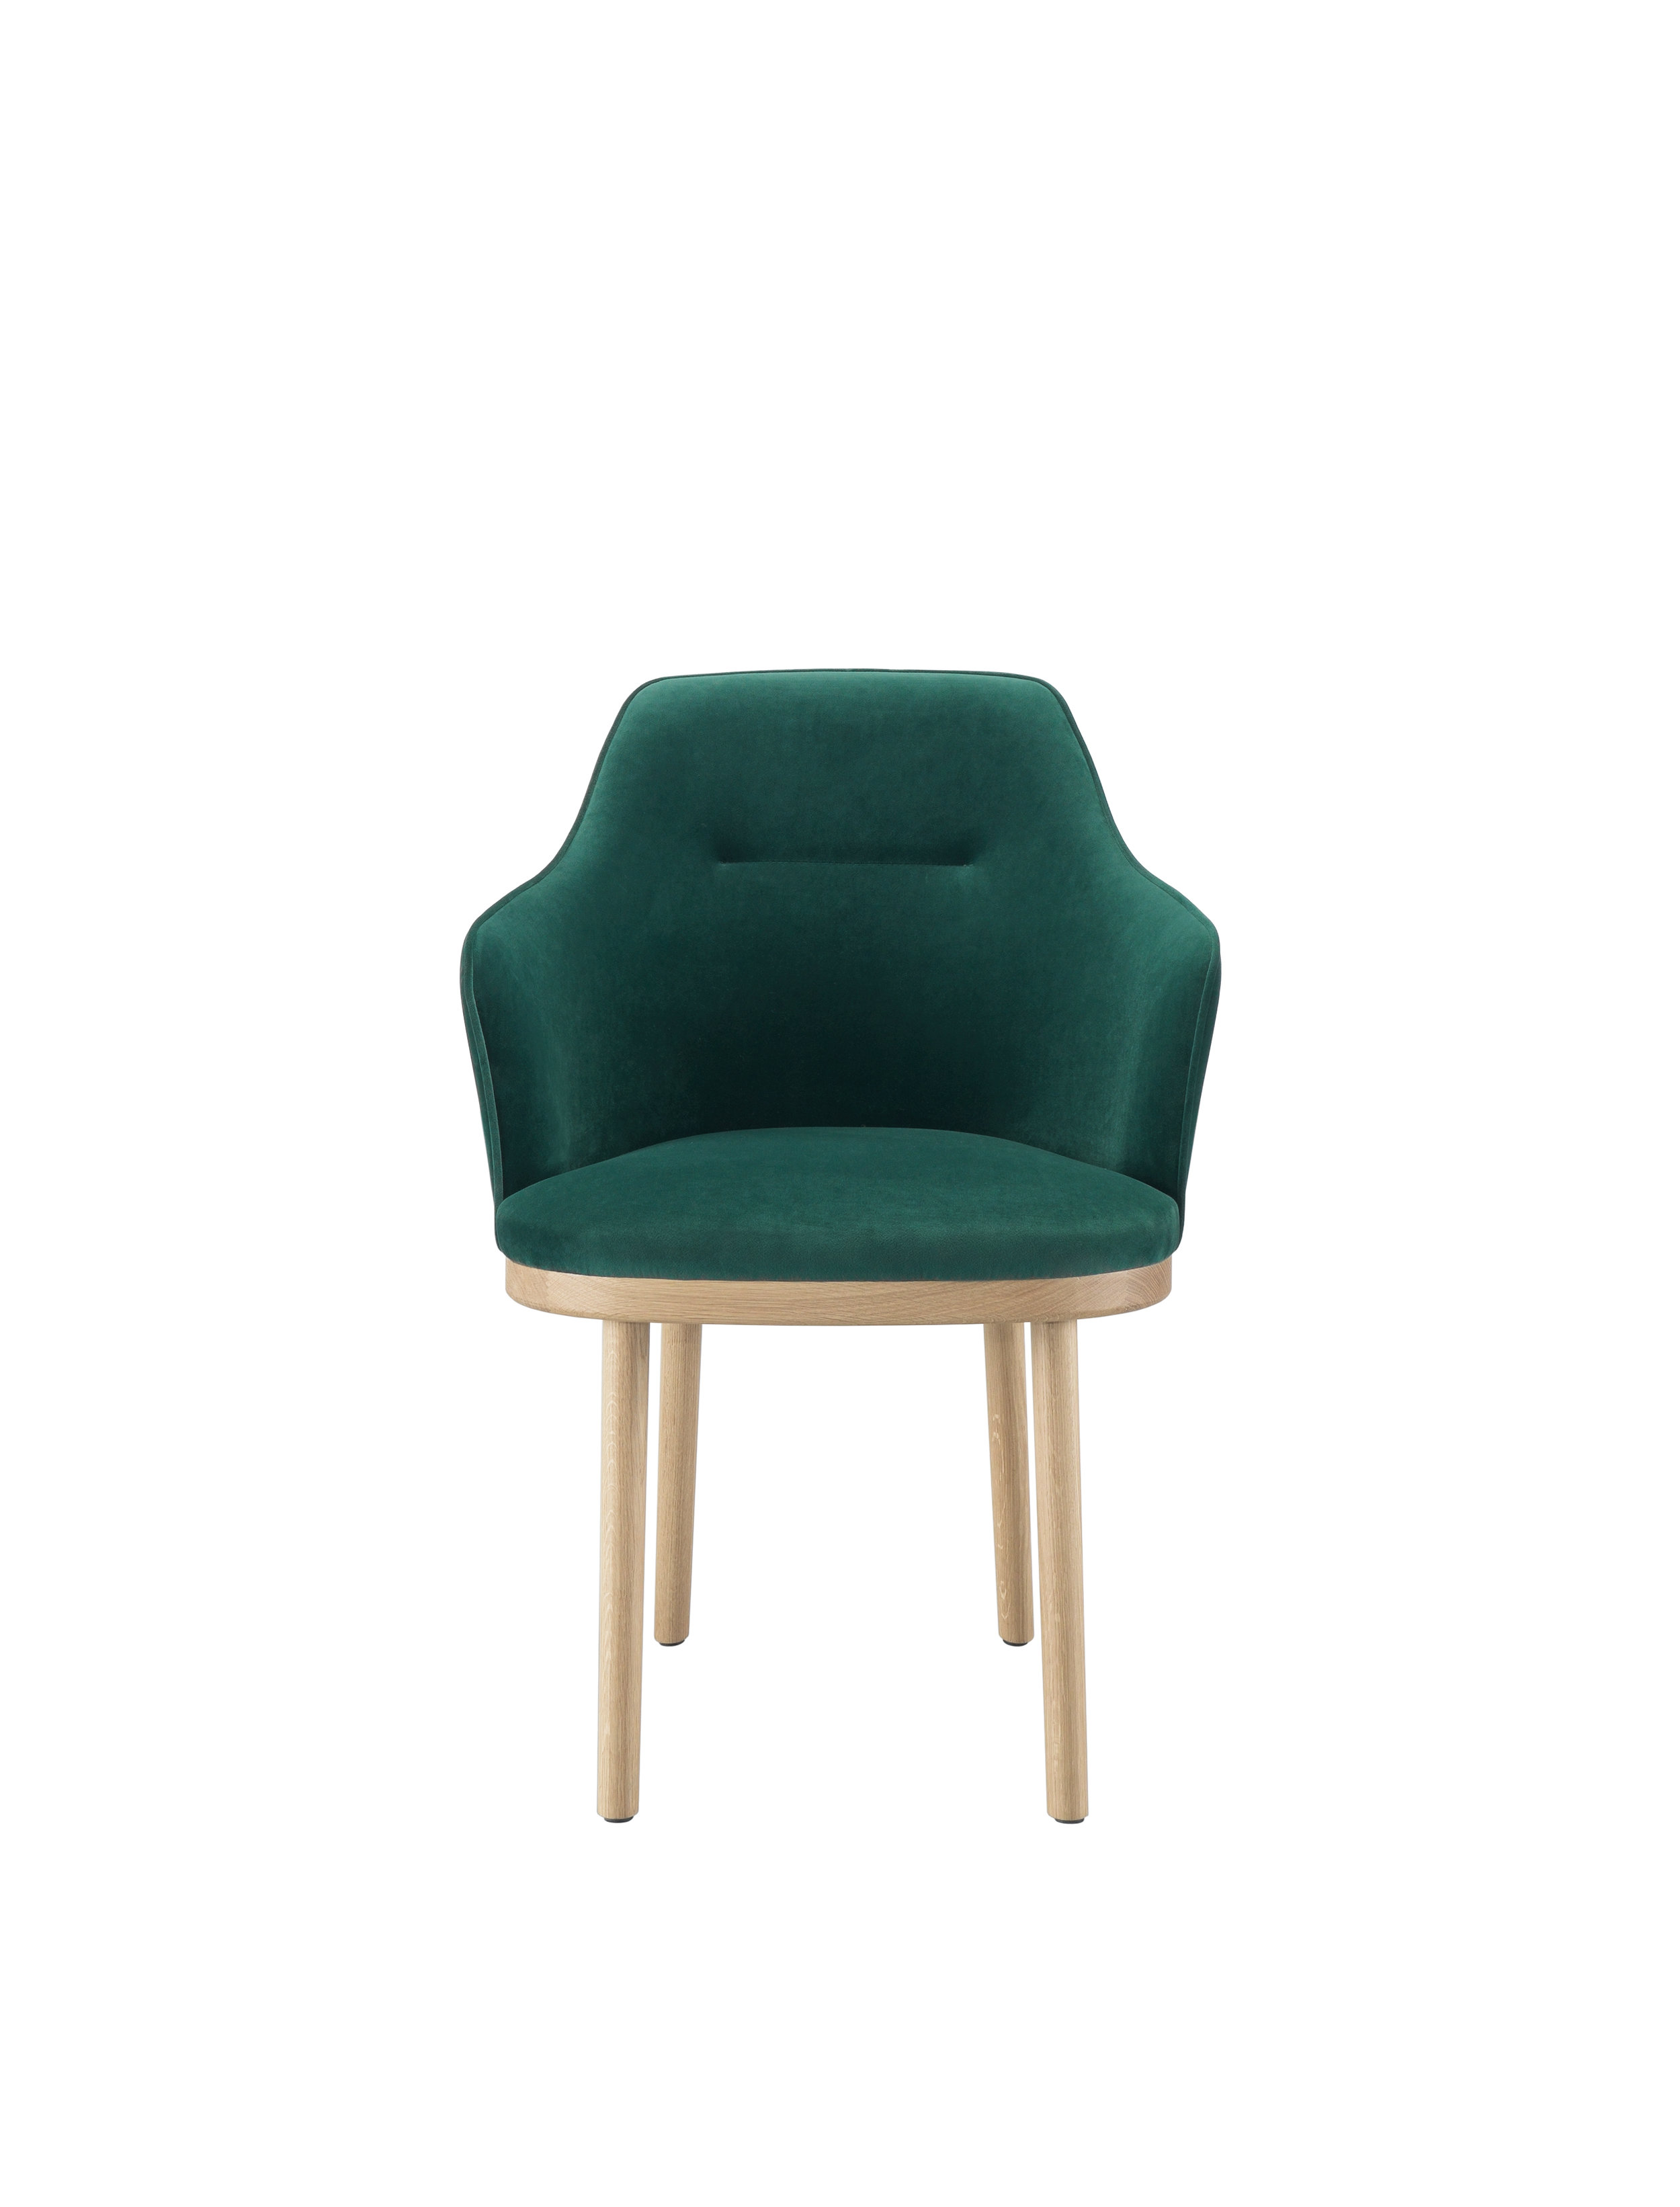 Armchair with wood structure